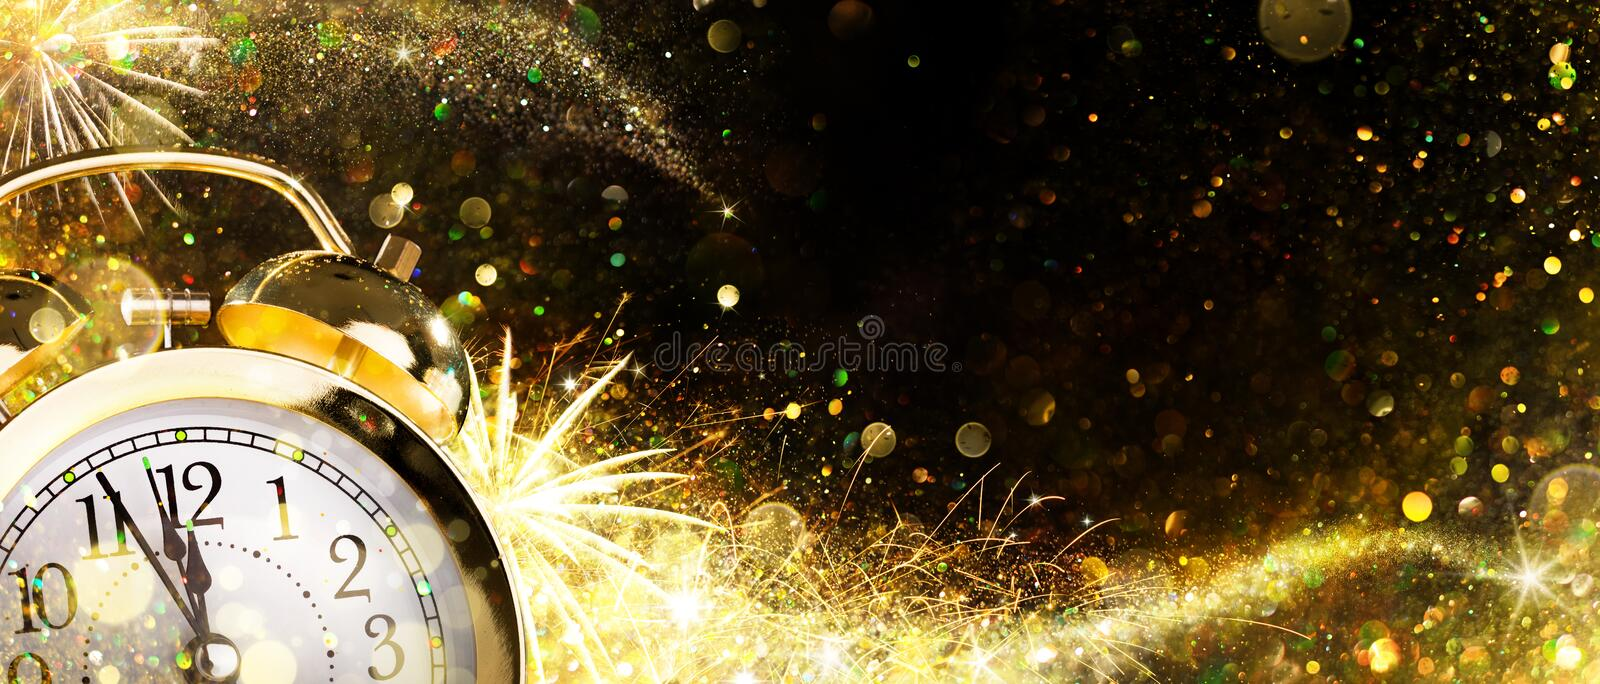 Countdown For New Year - Alarm Clock royalty free stock photography